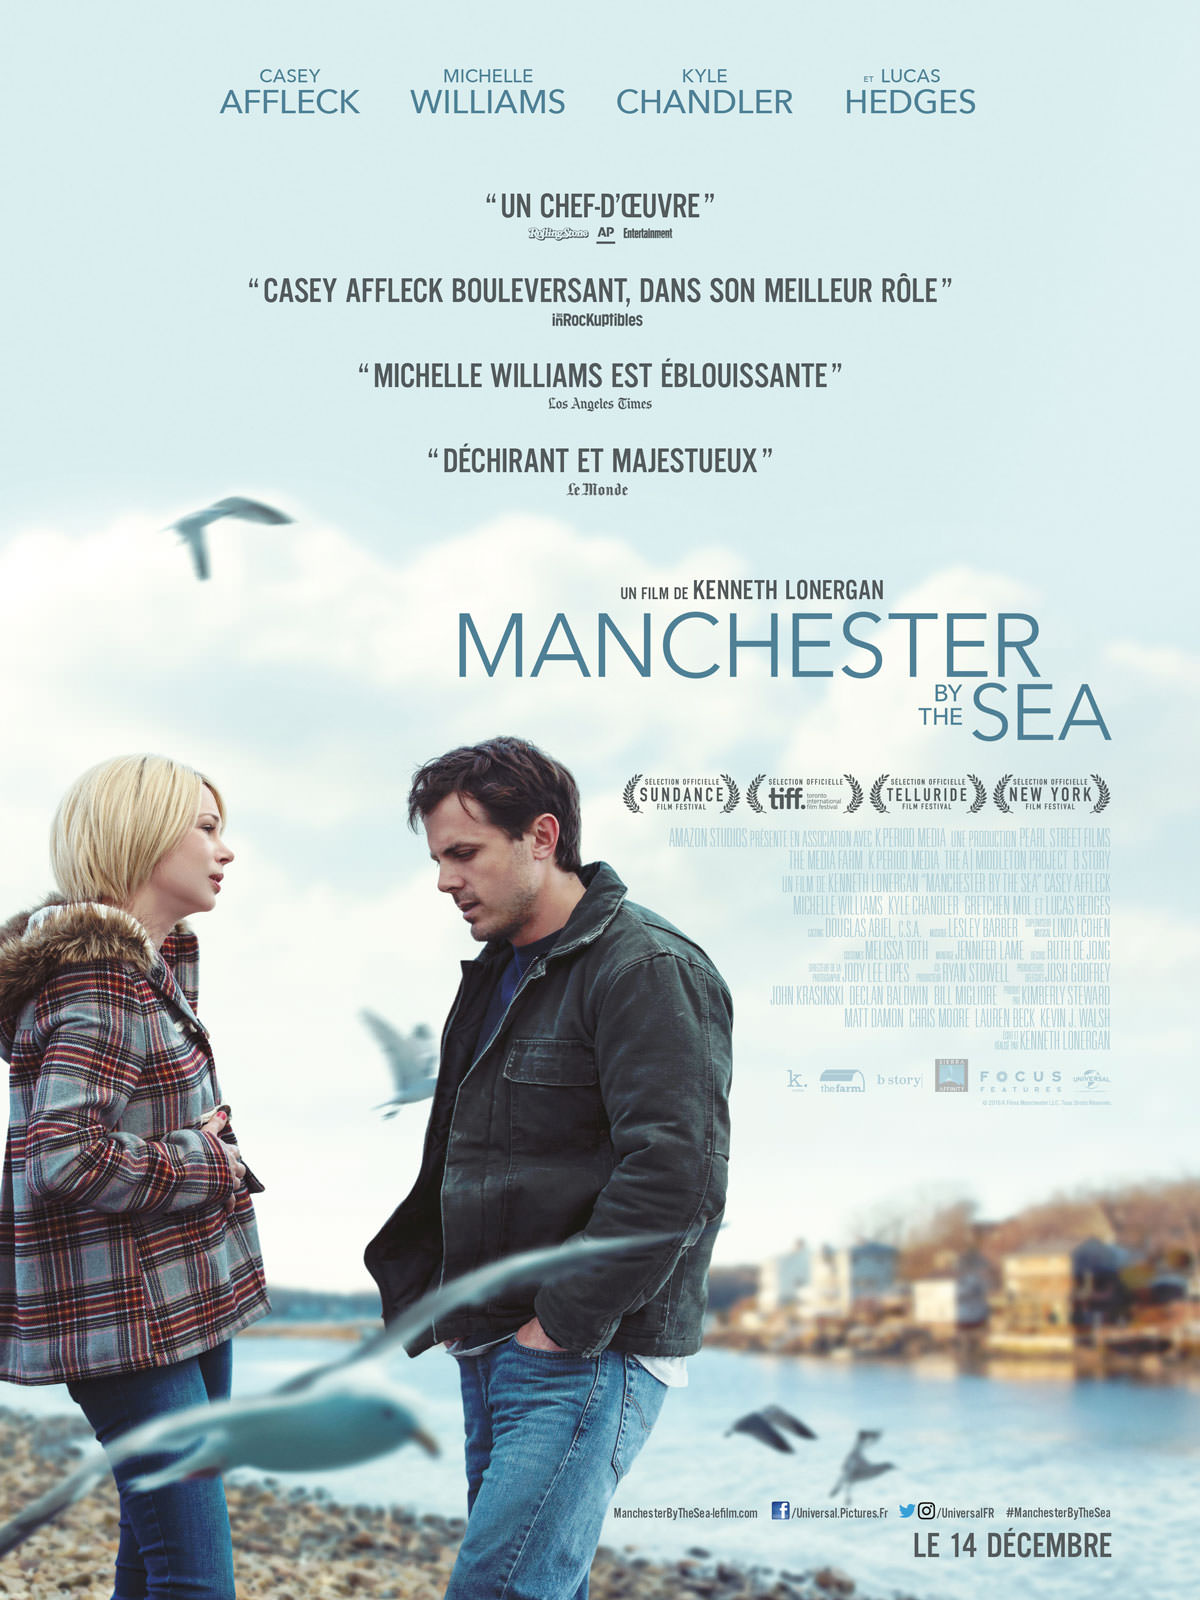 Blog-Mode-And-The-City-Lifestyle-Cinq-Petites-Choses-202-Manchester-By-The-Sea